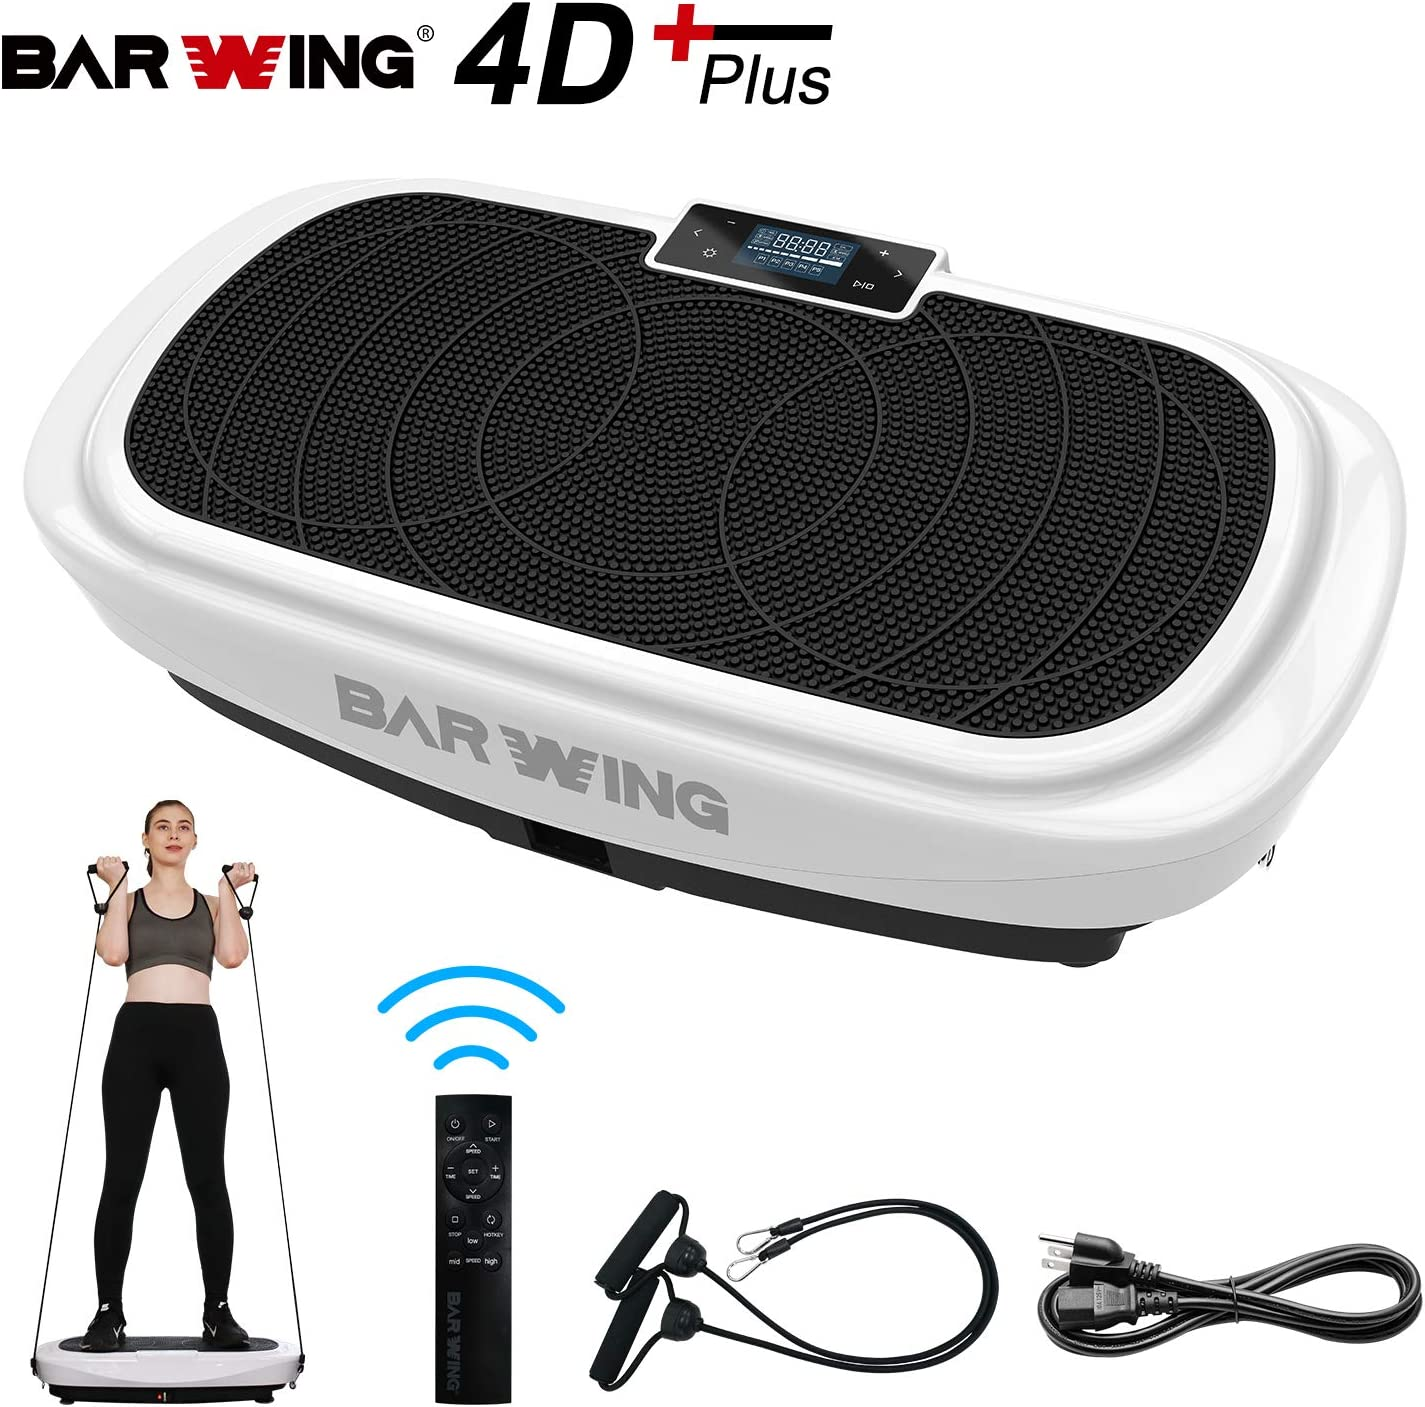 BARWING 4D Vibration Platform, Micro Vibration, Whole Body Workout Machine, Home Training Equipment Balance Trainer with Remote Control